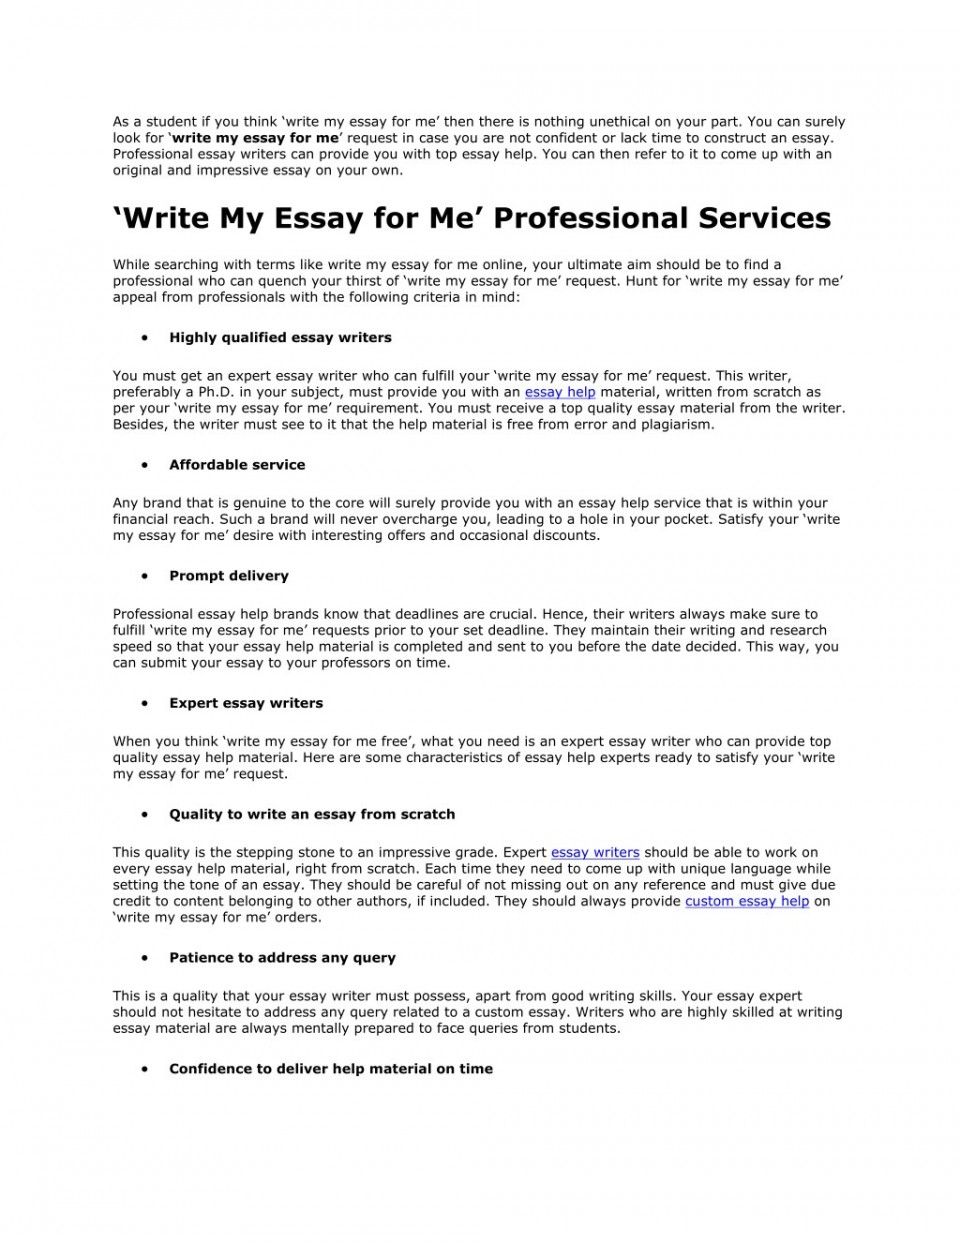 017 Write My Essay For Me Example As Student If You Think Surprising Please Generator Free Online 960